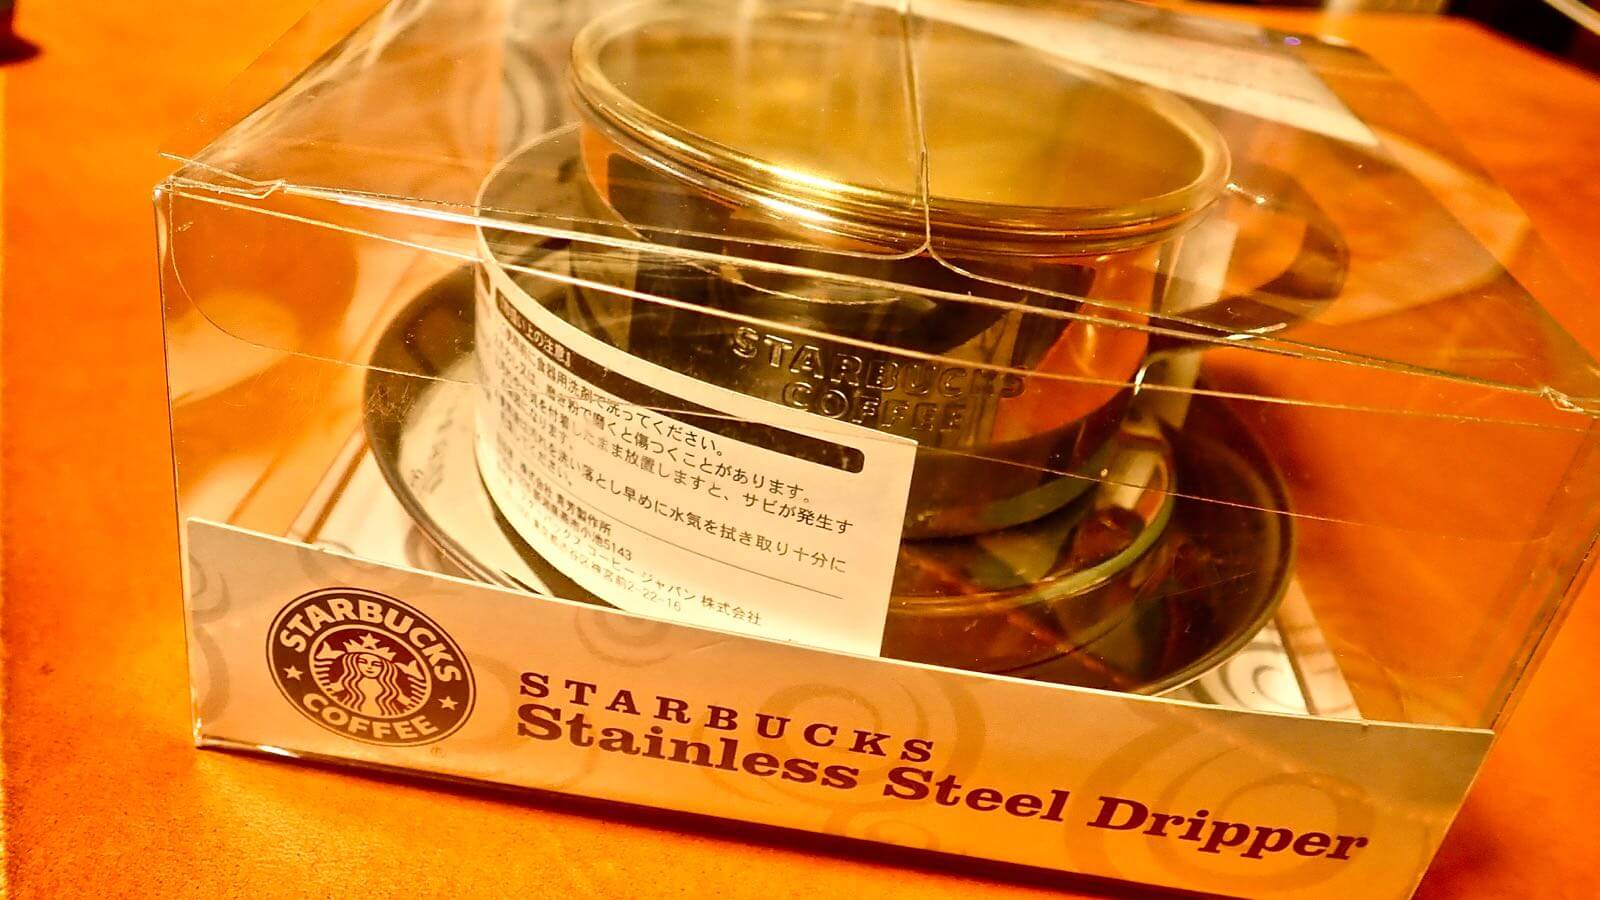 0008 Starbucks Stainless Steel Dripper  01